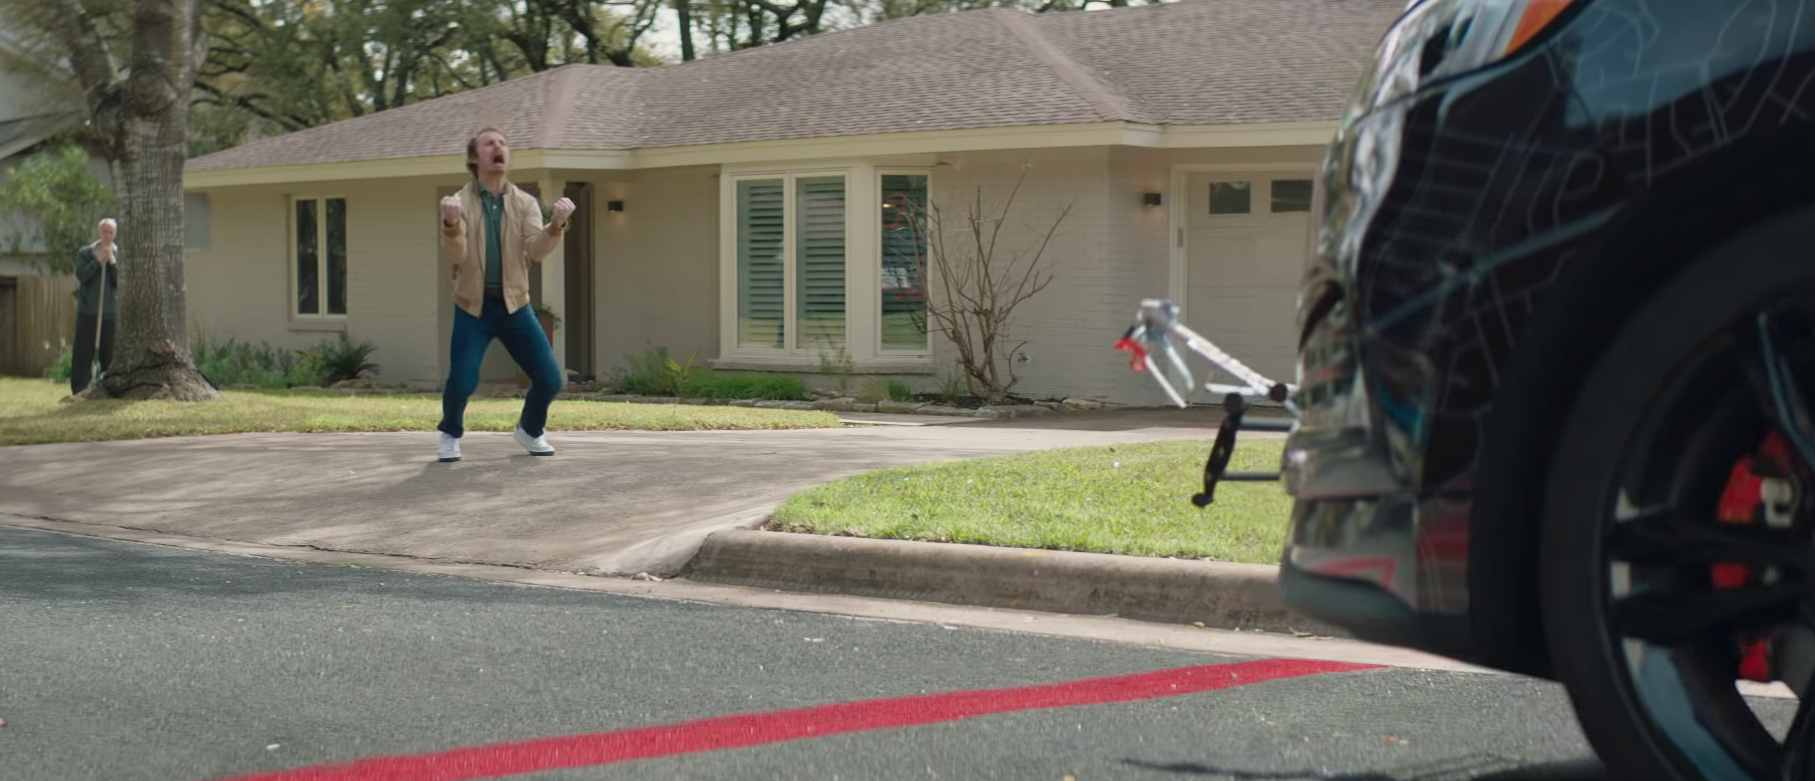 """Sandwich Makers Jimmy John's """"Draw The Line"""" in New Ad"""